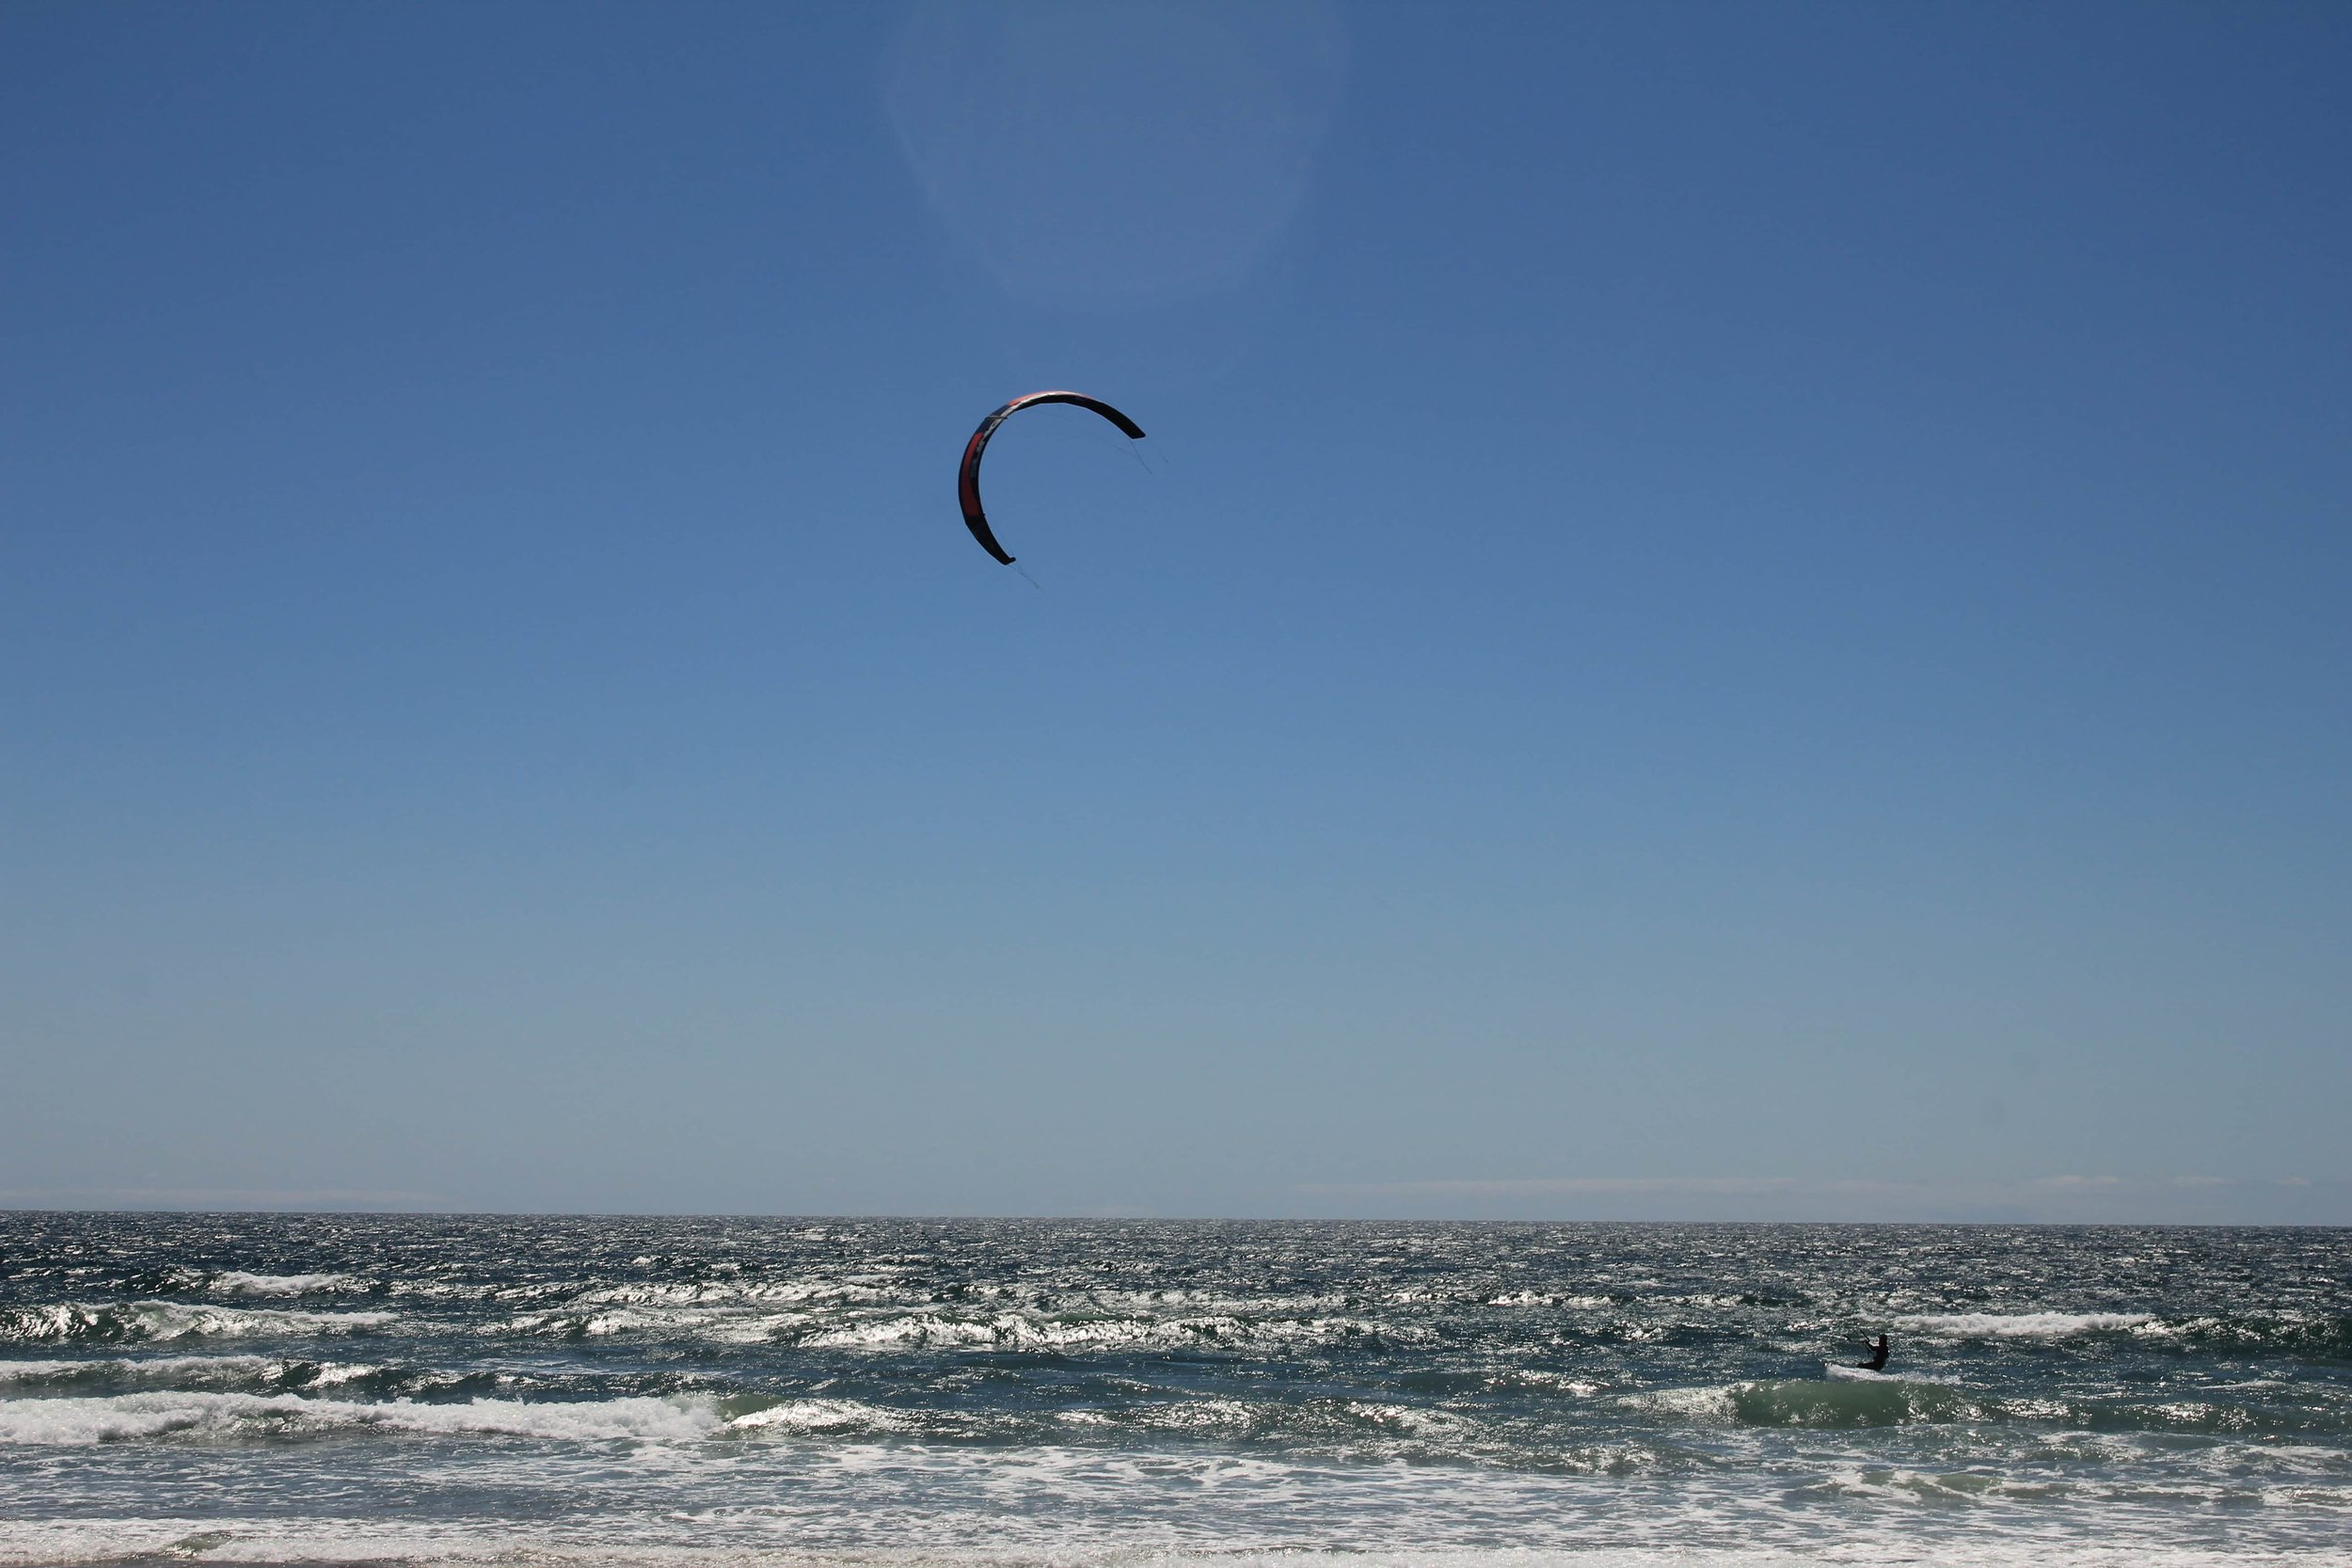 A picture I took of a kitesurfer in San Diego